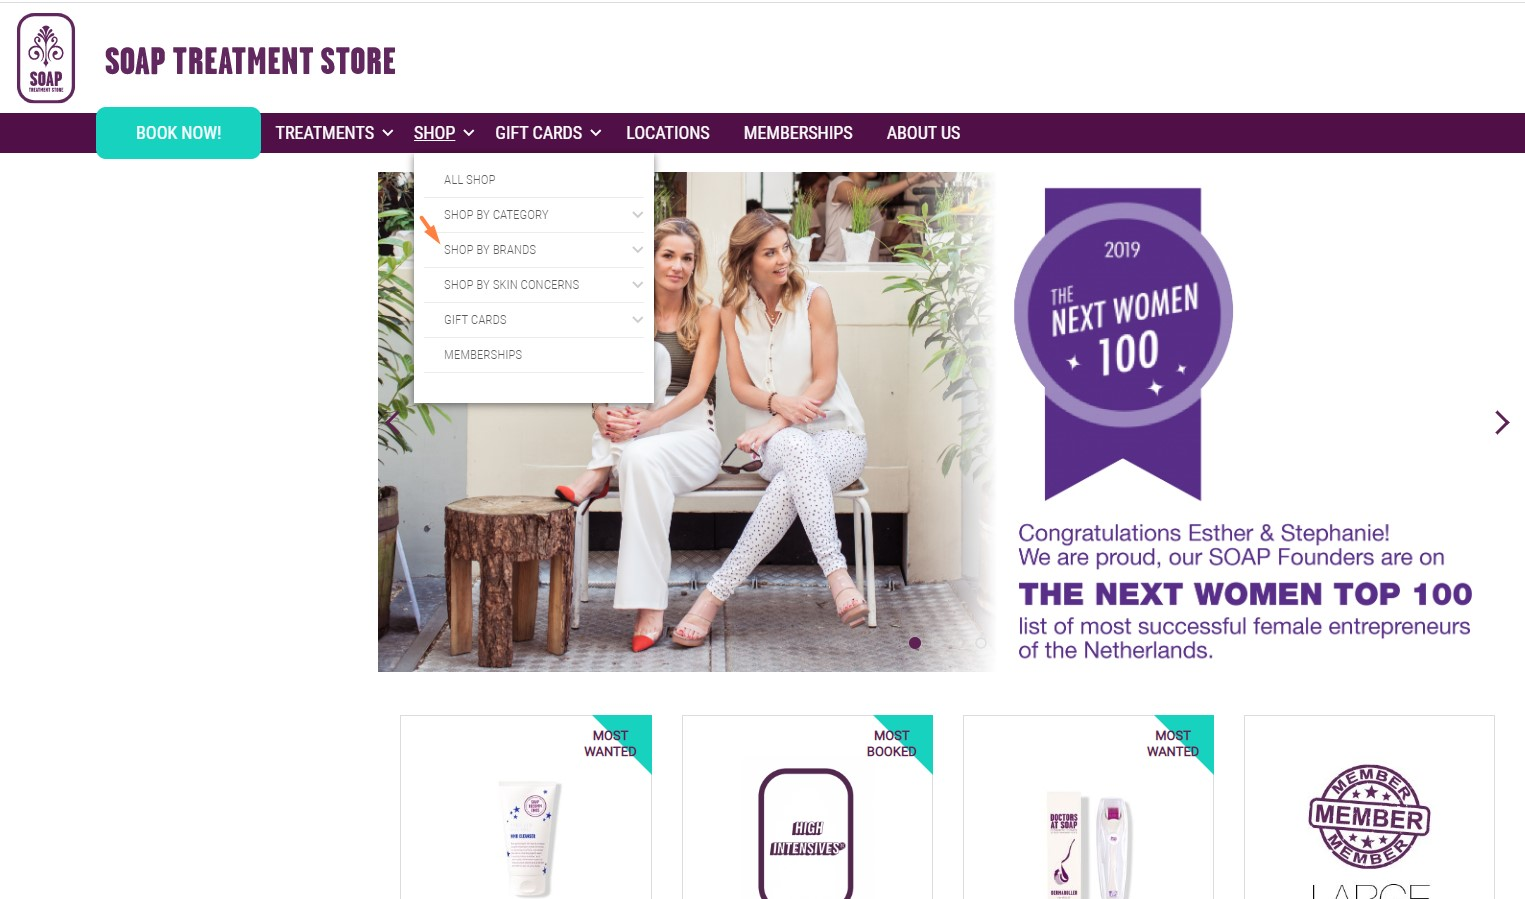 Magento 2 Shop by Brand Functionality   MageWorx Blog